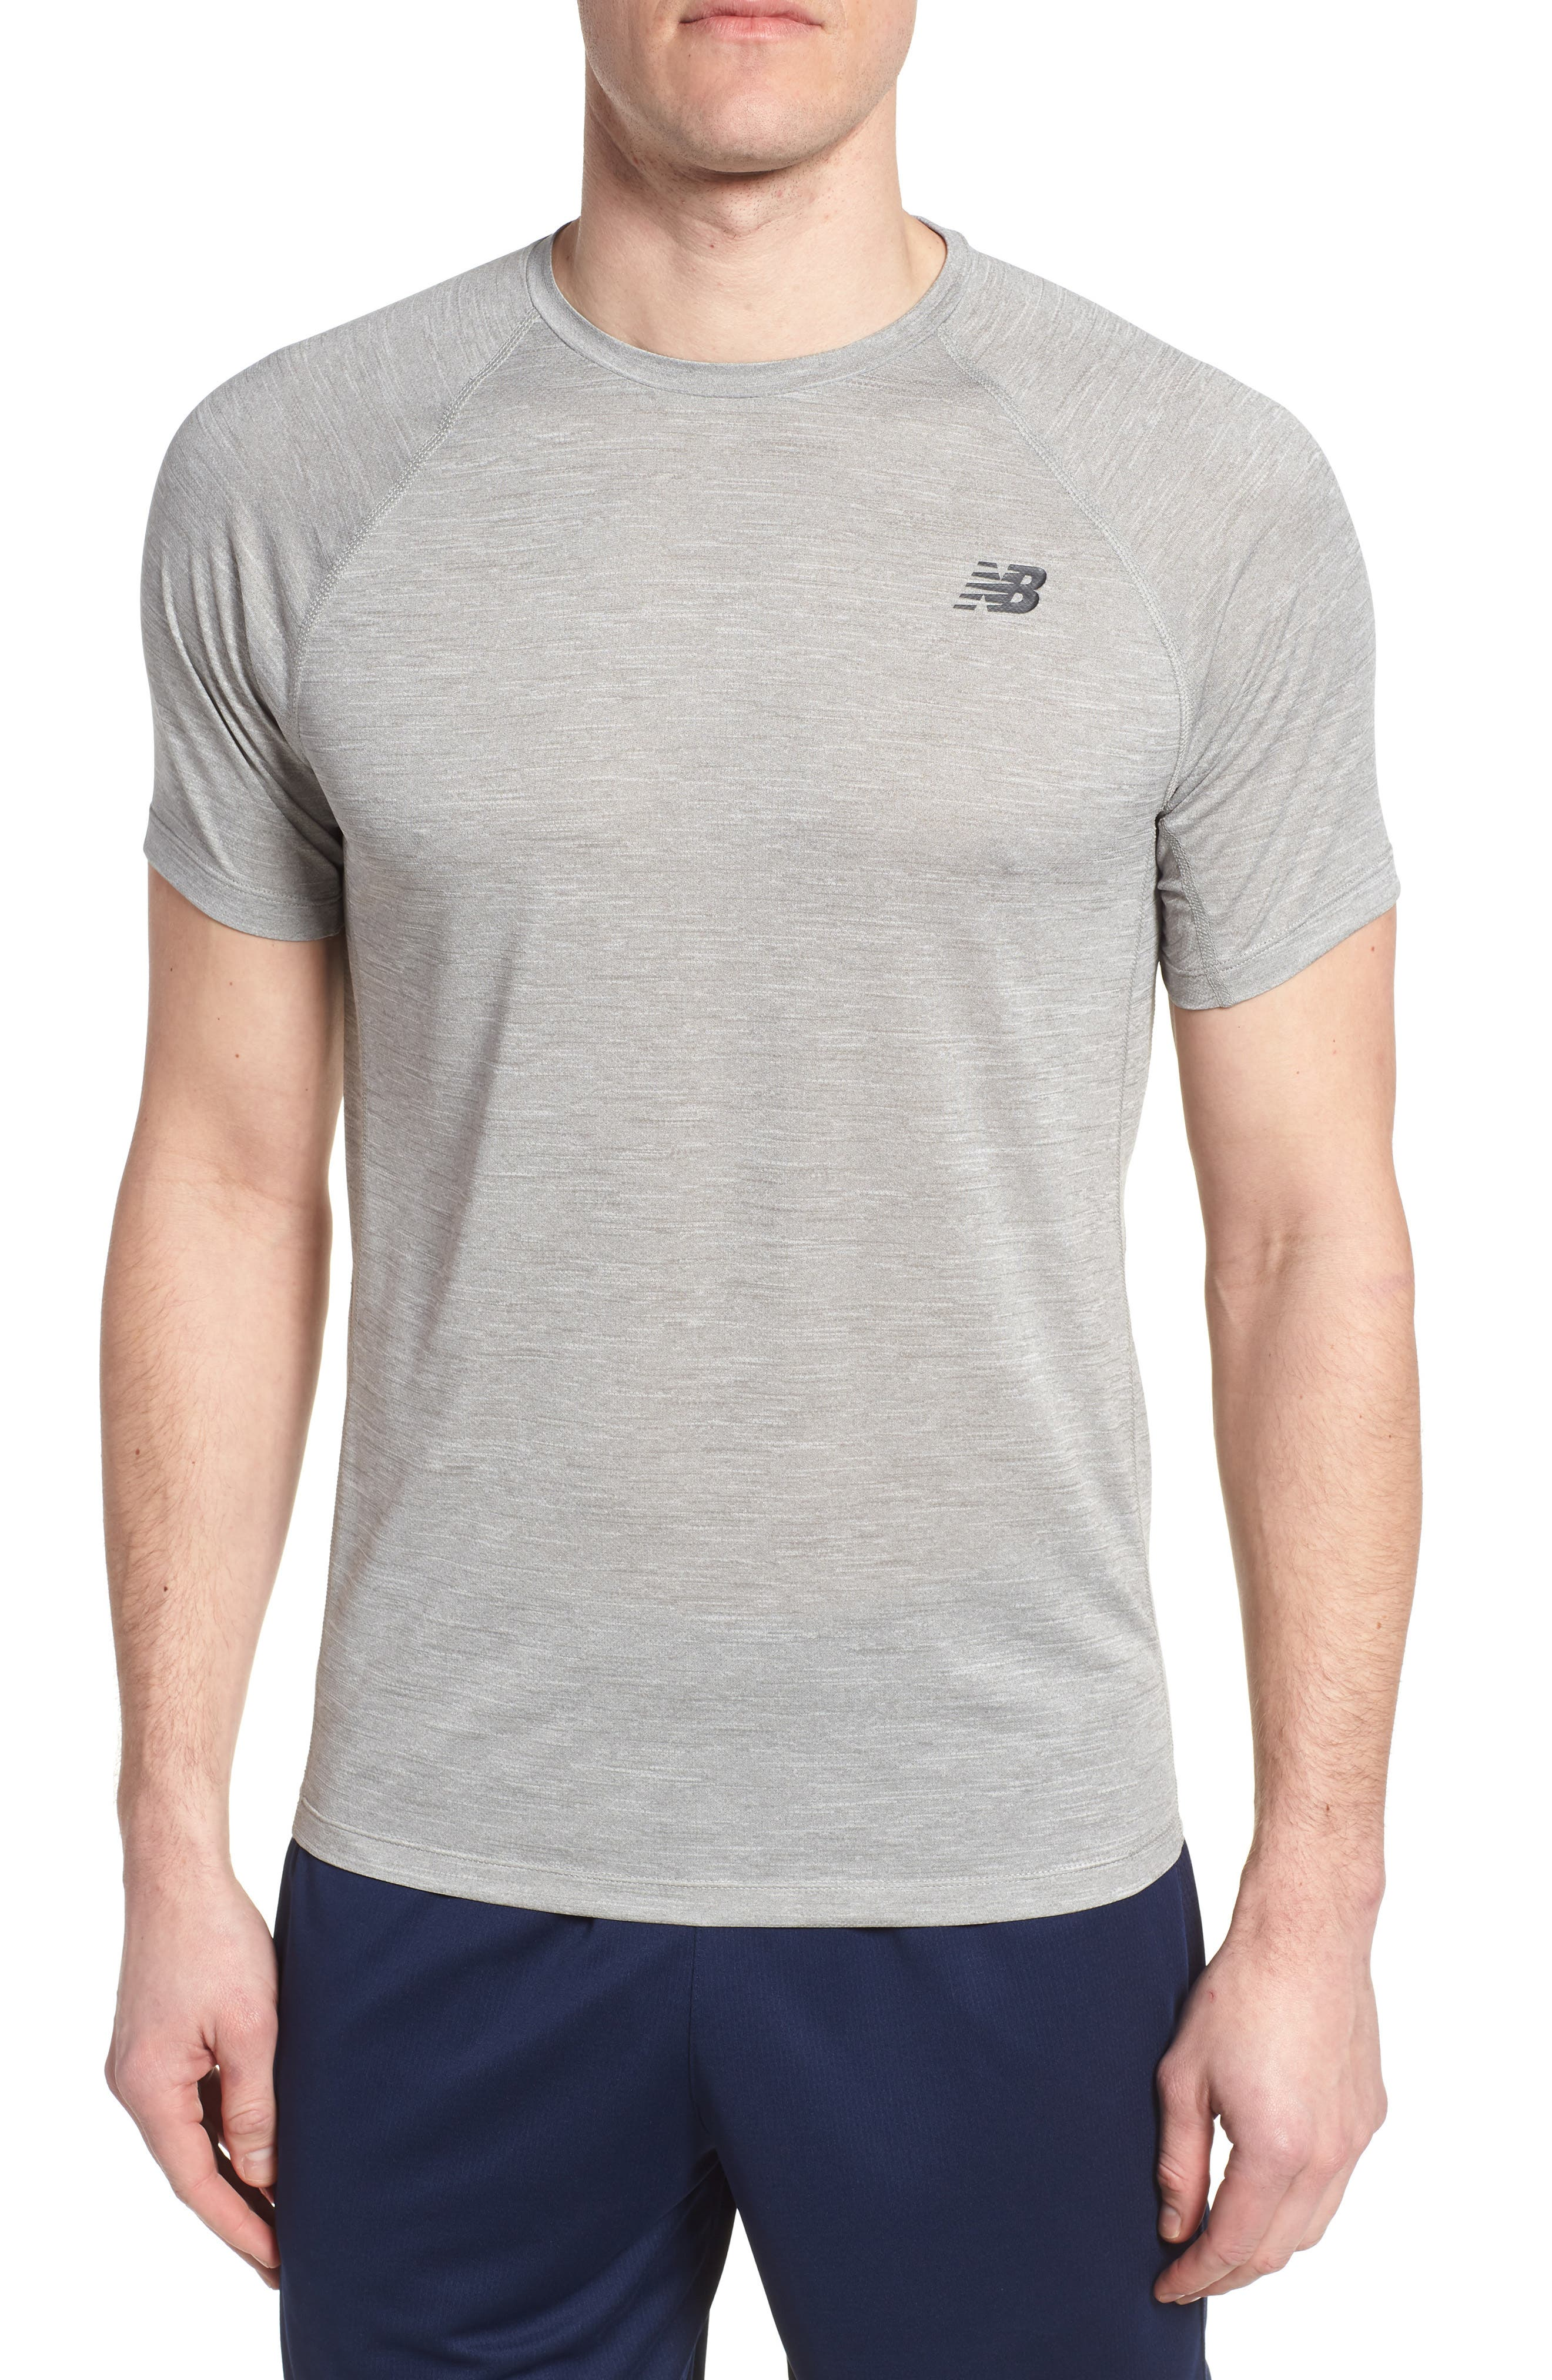 Tenacity Crewneck T-Shirt,                         Main,                         color, ATHLETIC GREY